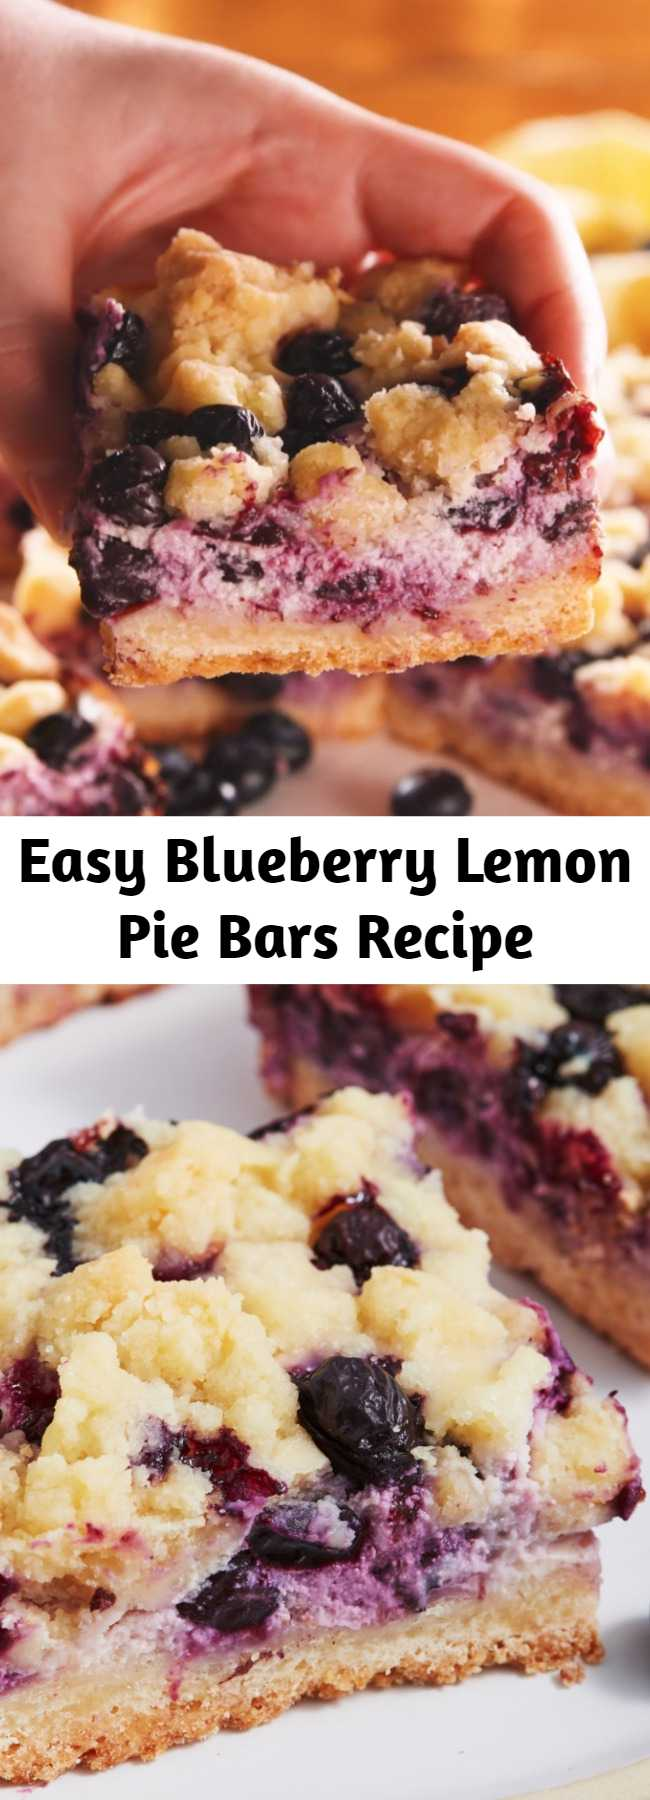 Easy Blueberry Lemon Pie Bars Recipe - Lemons and blueberries go together like spring and sunshine. They are the perfect combo and these cookie pie bars are our favourite yet! Zesty, creamy and with a steusel crumble topping, these flavoursome bars are like sunshine in cake form.